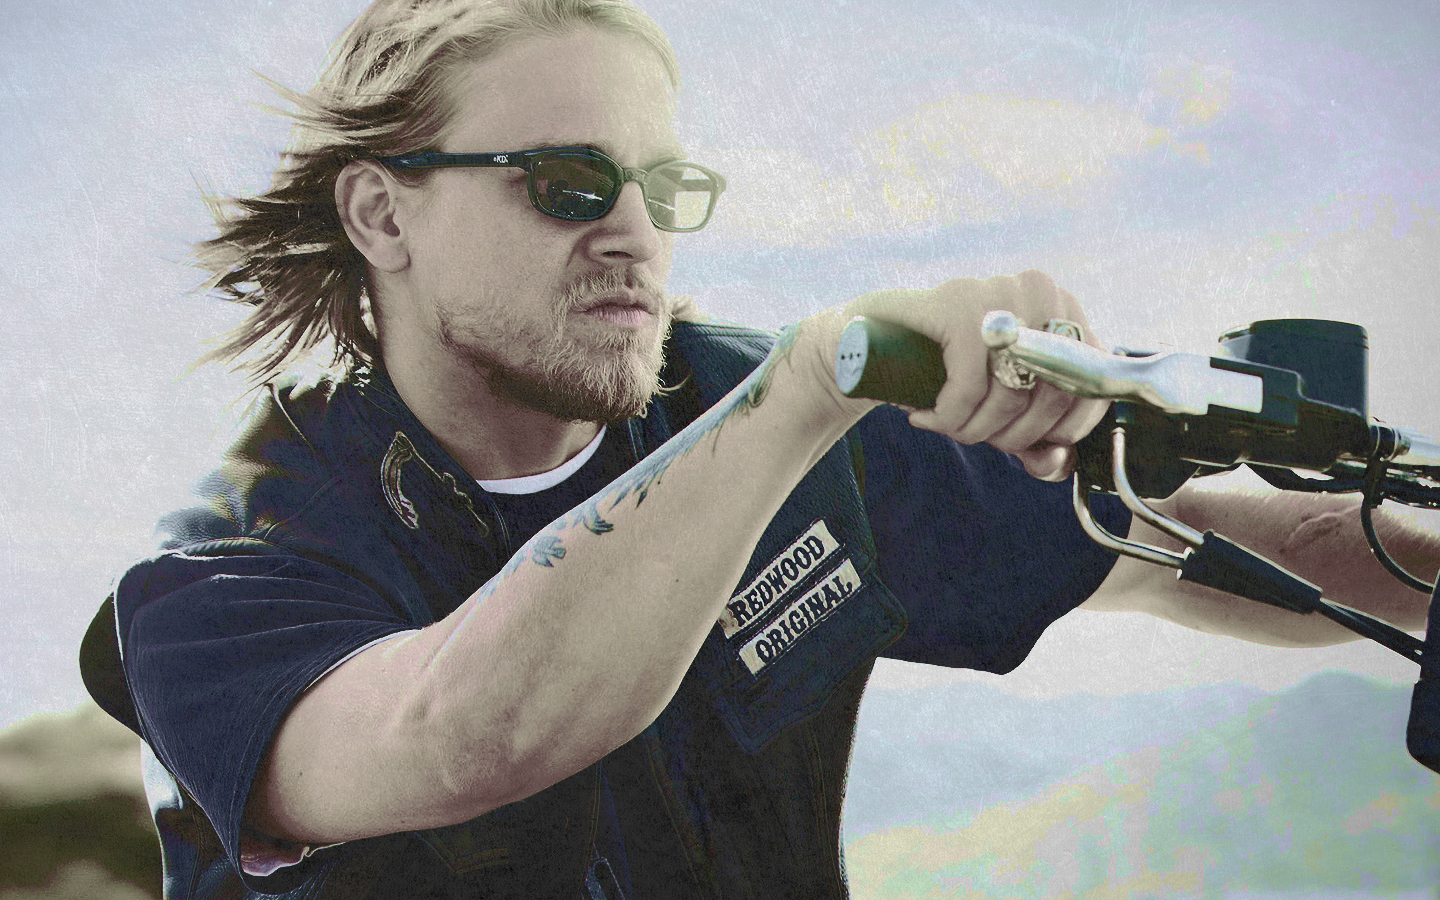 SOA wallpaper - Jax